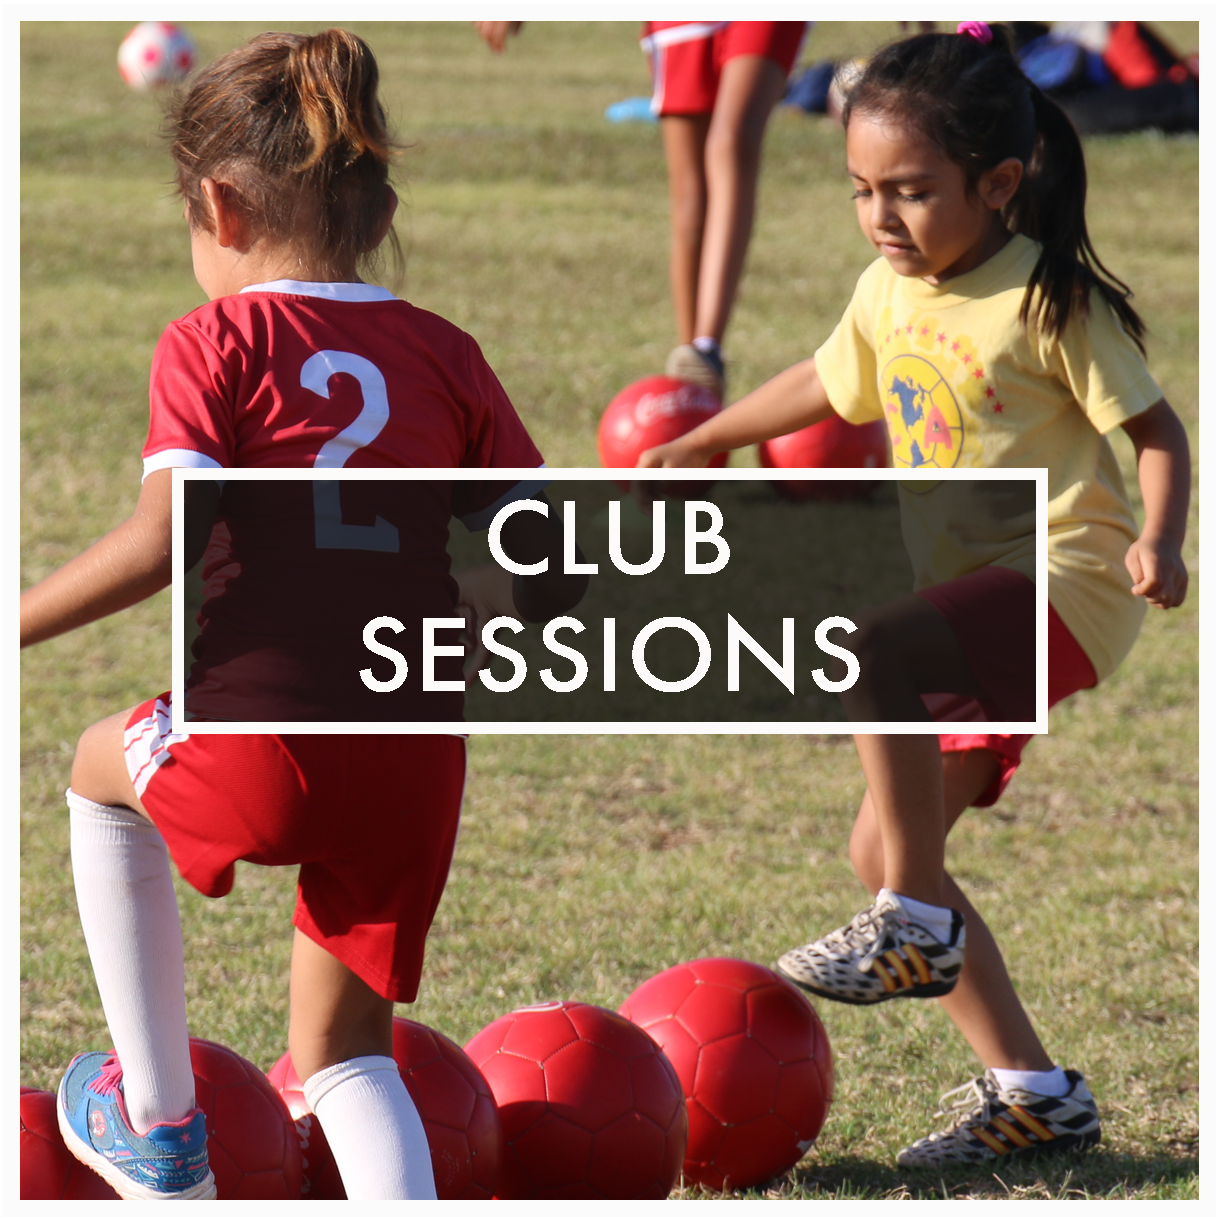 LEARN TO PLAY & LEAD AT OUR BACALAR CLUB.   Training sessions  up to 4 times a week every week   @ our Bacalar Club training Hub, Mexico  Open to  all   abilities  and experience levels  Ages  5 to 18  are welcome